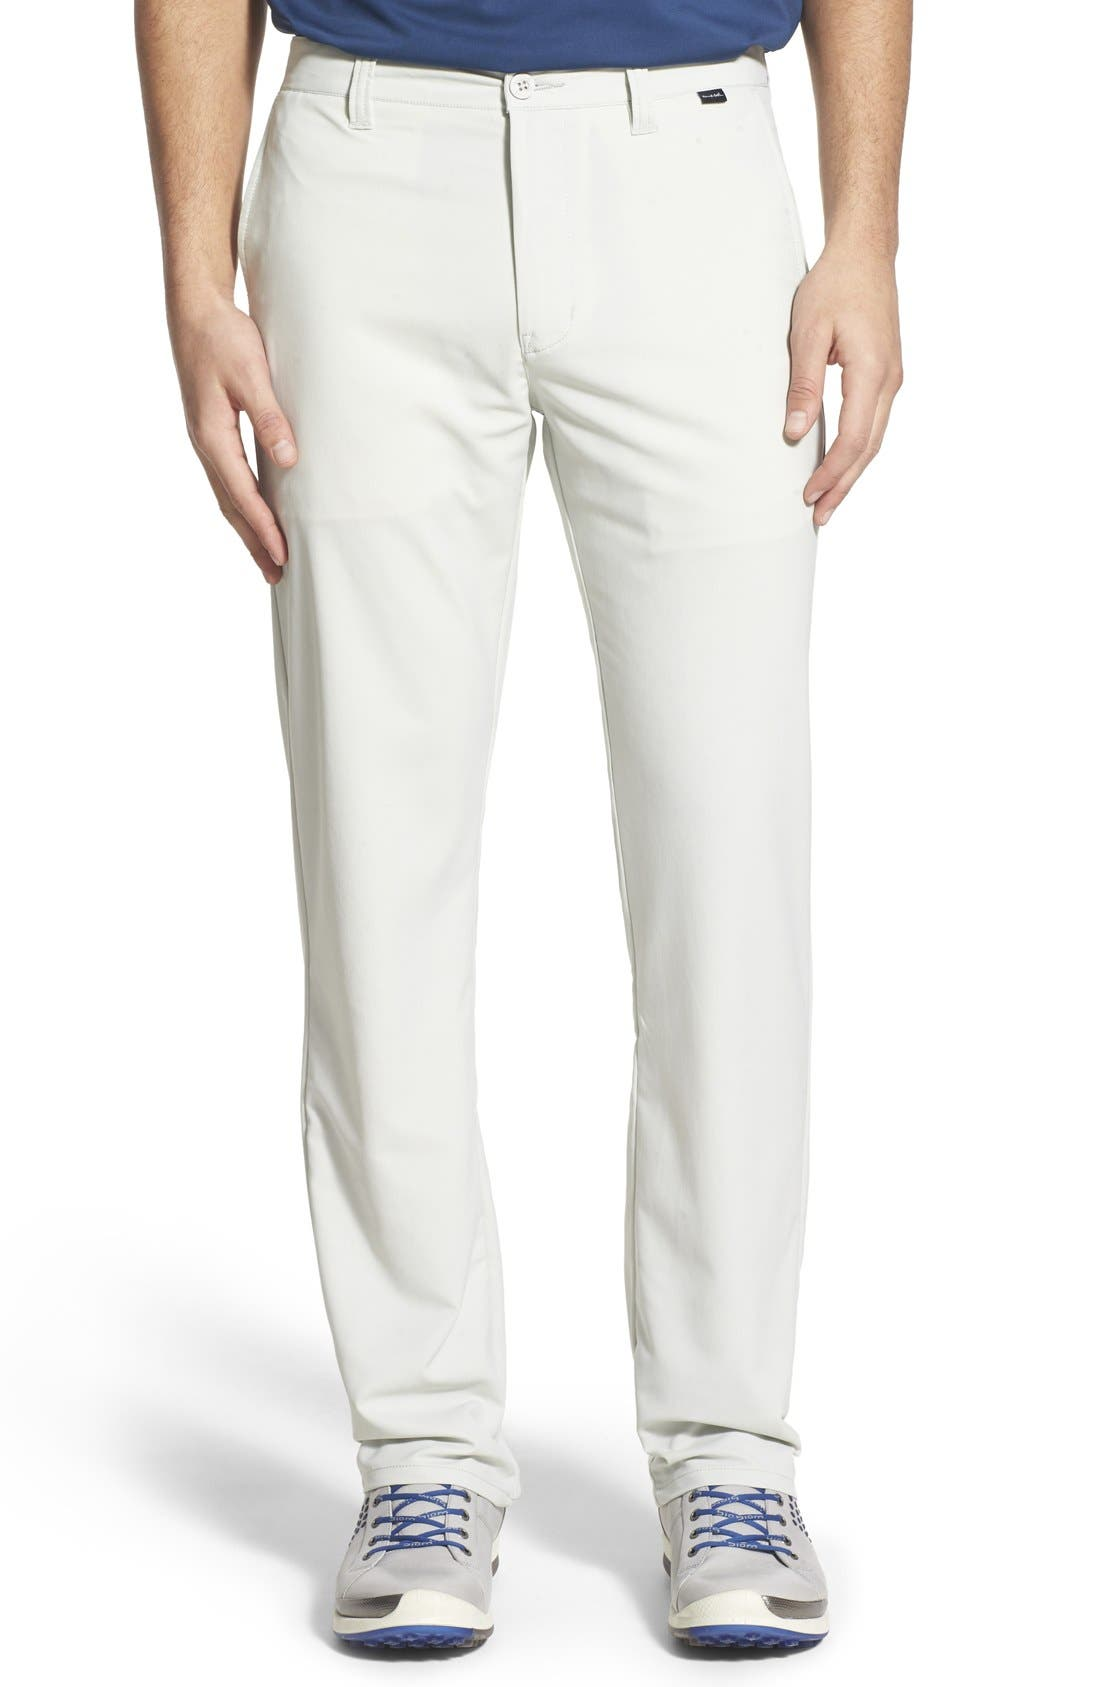 Travis Mathew 'Hough' Trim Fit Golf Pants